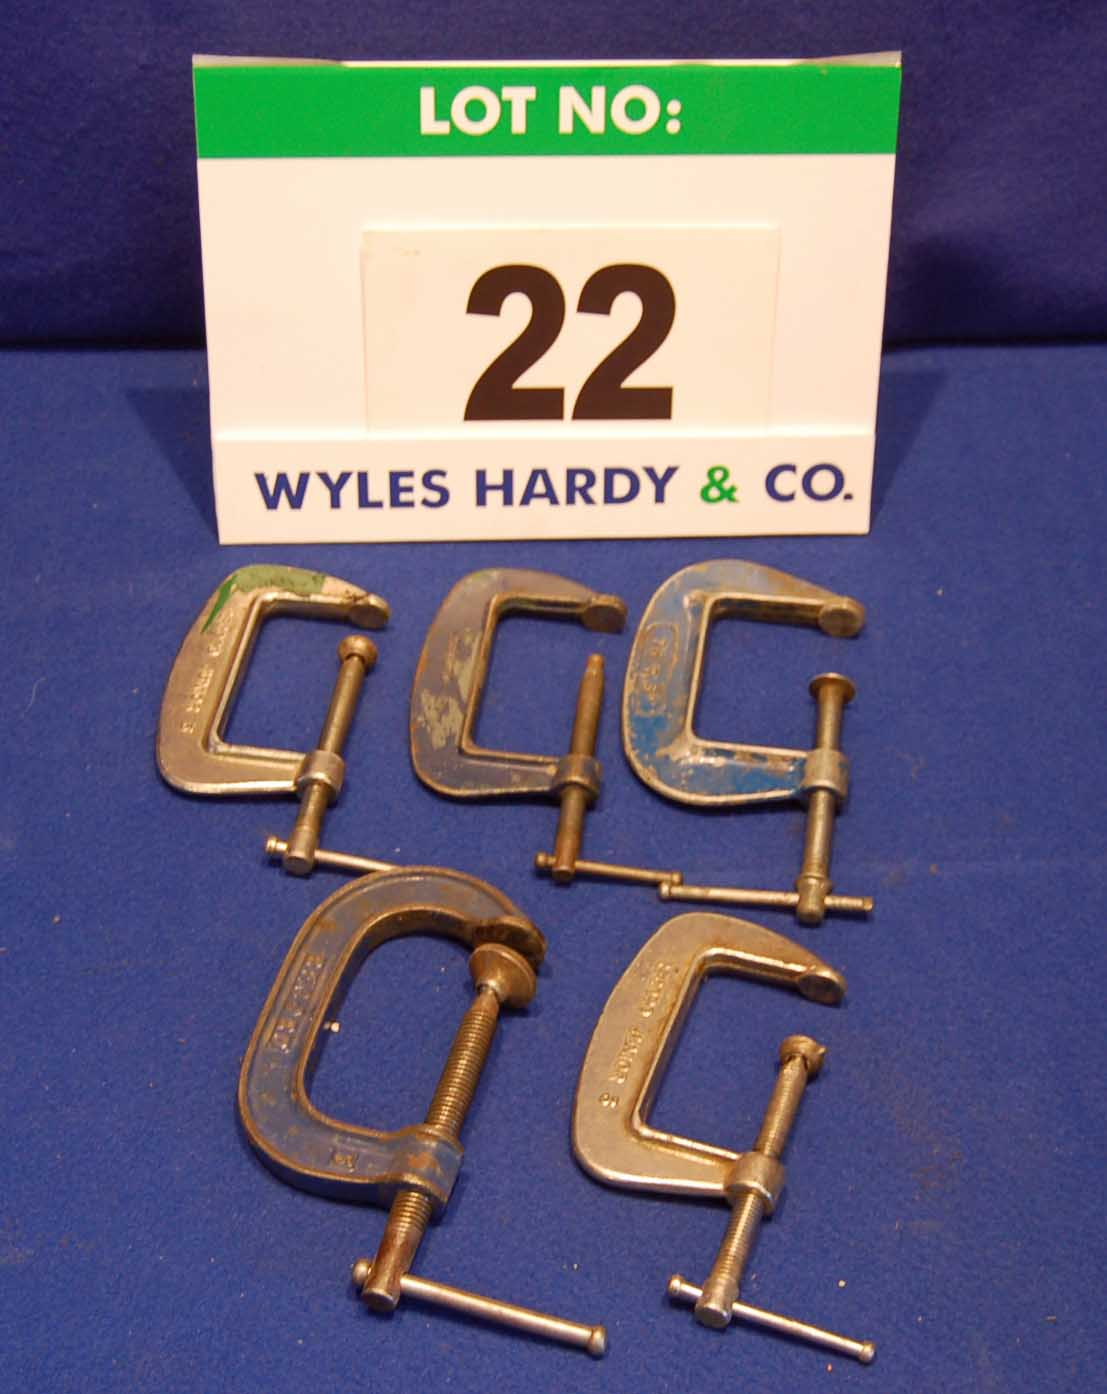 Lot 22 - Five 3 Inch G Clamps (As Photographed)